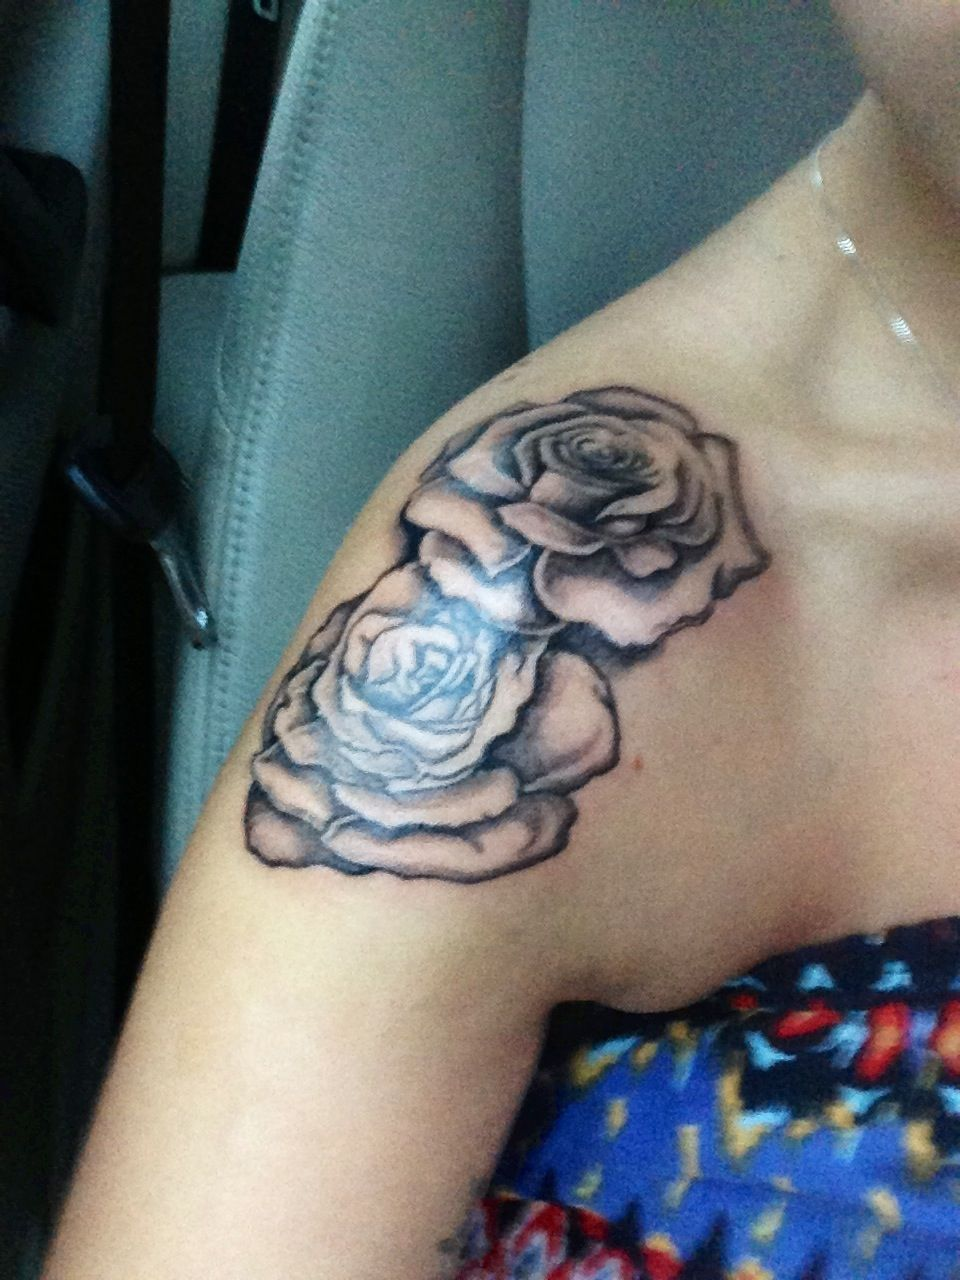 rose tattoo, GUIOX,TATTOO KITS SALES ONLINE. Everyone who love ...